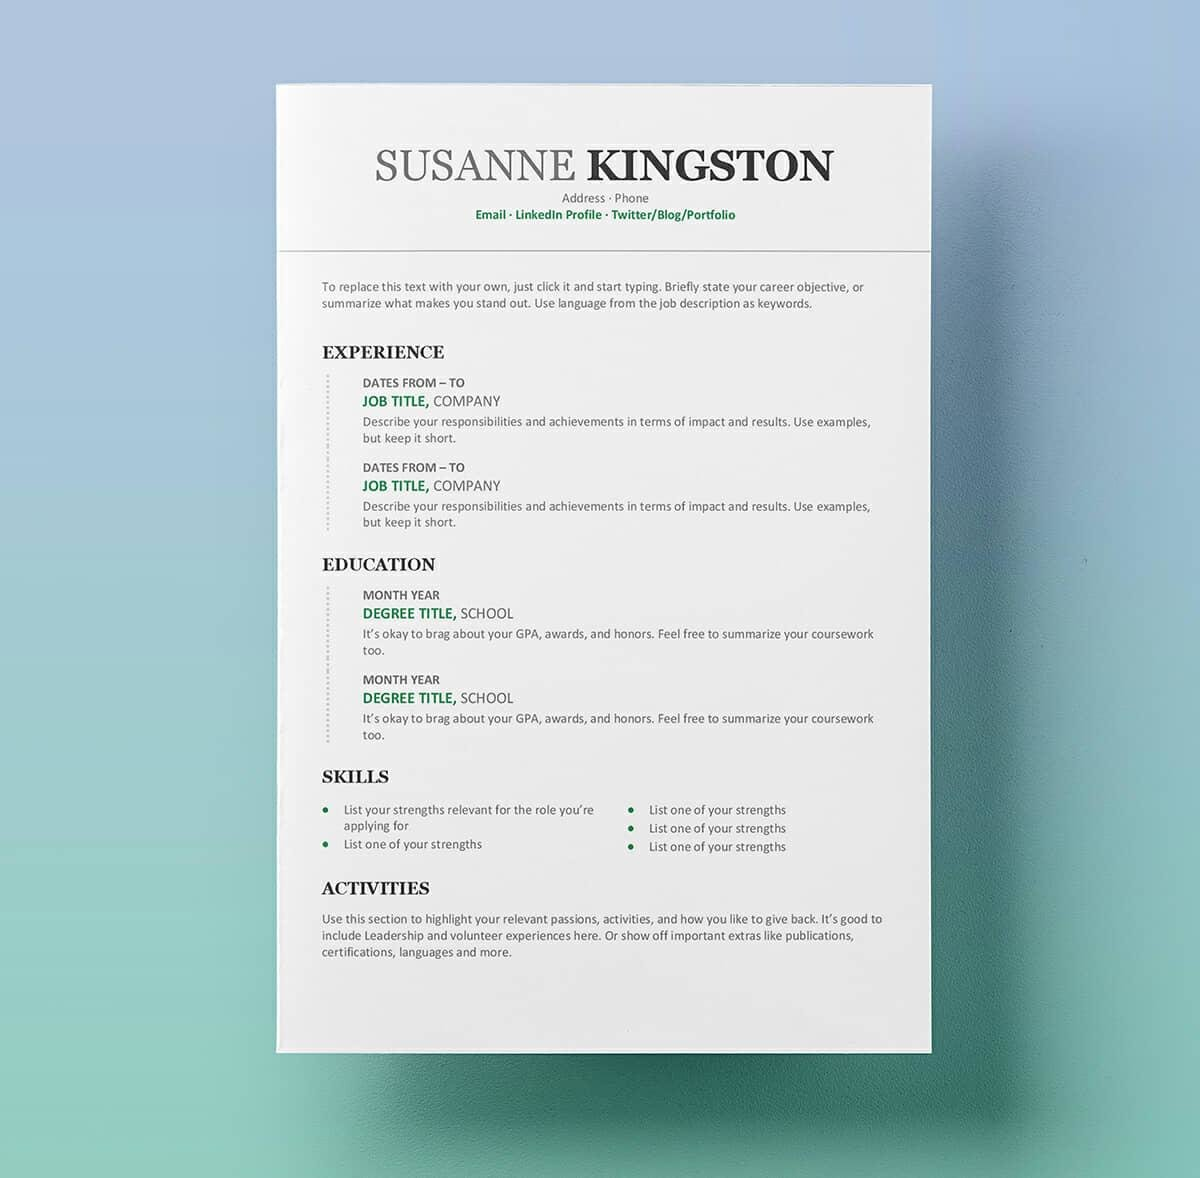 resume templates for word free 15 examples for download - Resume Template Free